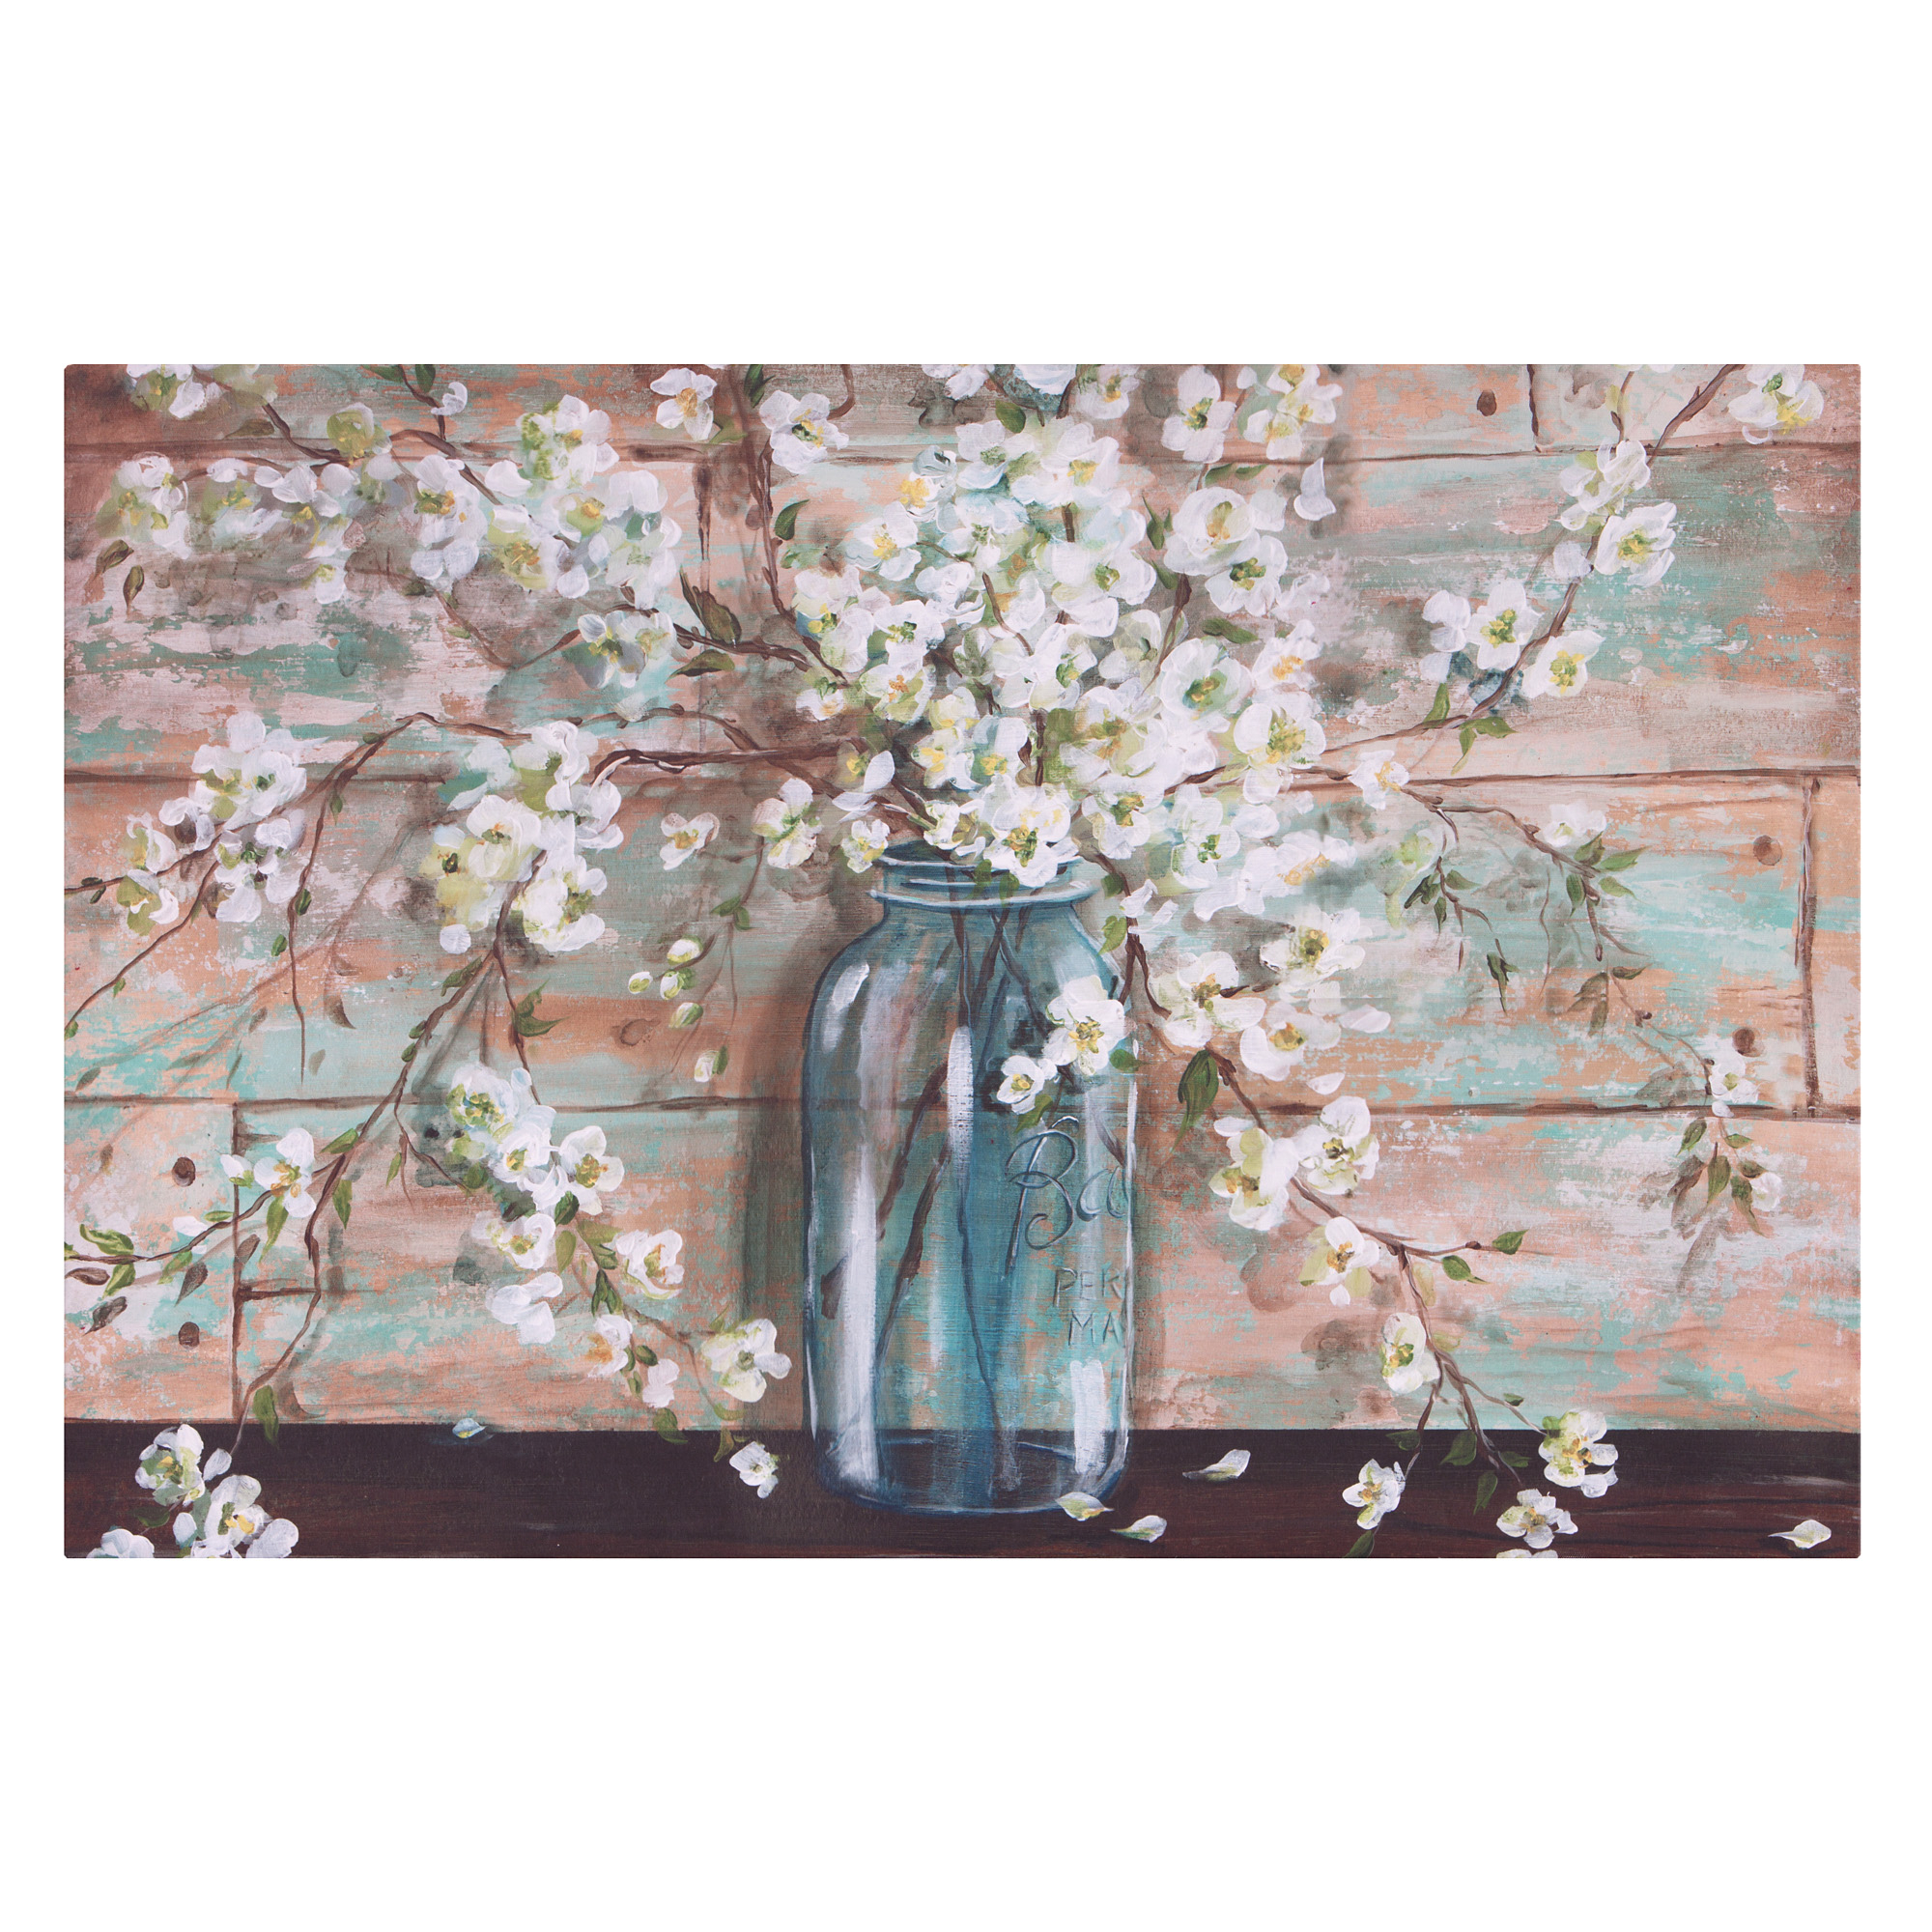 Wall Art – Walmart For 4 Piece Metal Wall Decor Sets (View 10 of 30)